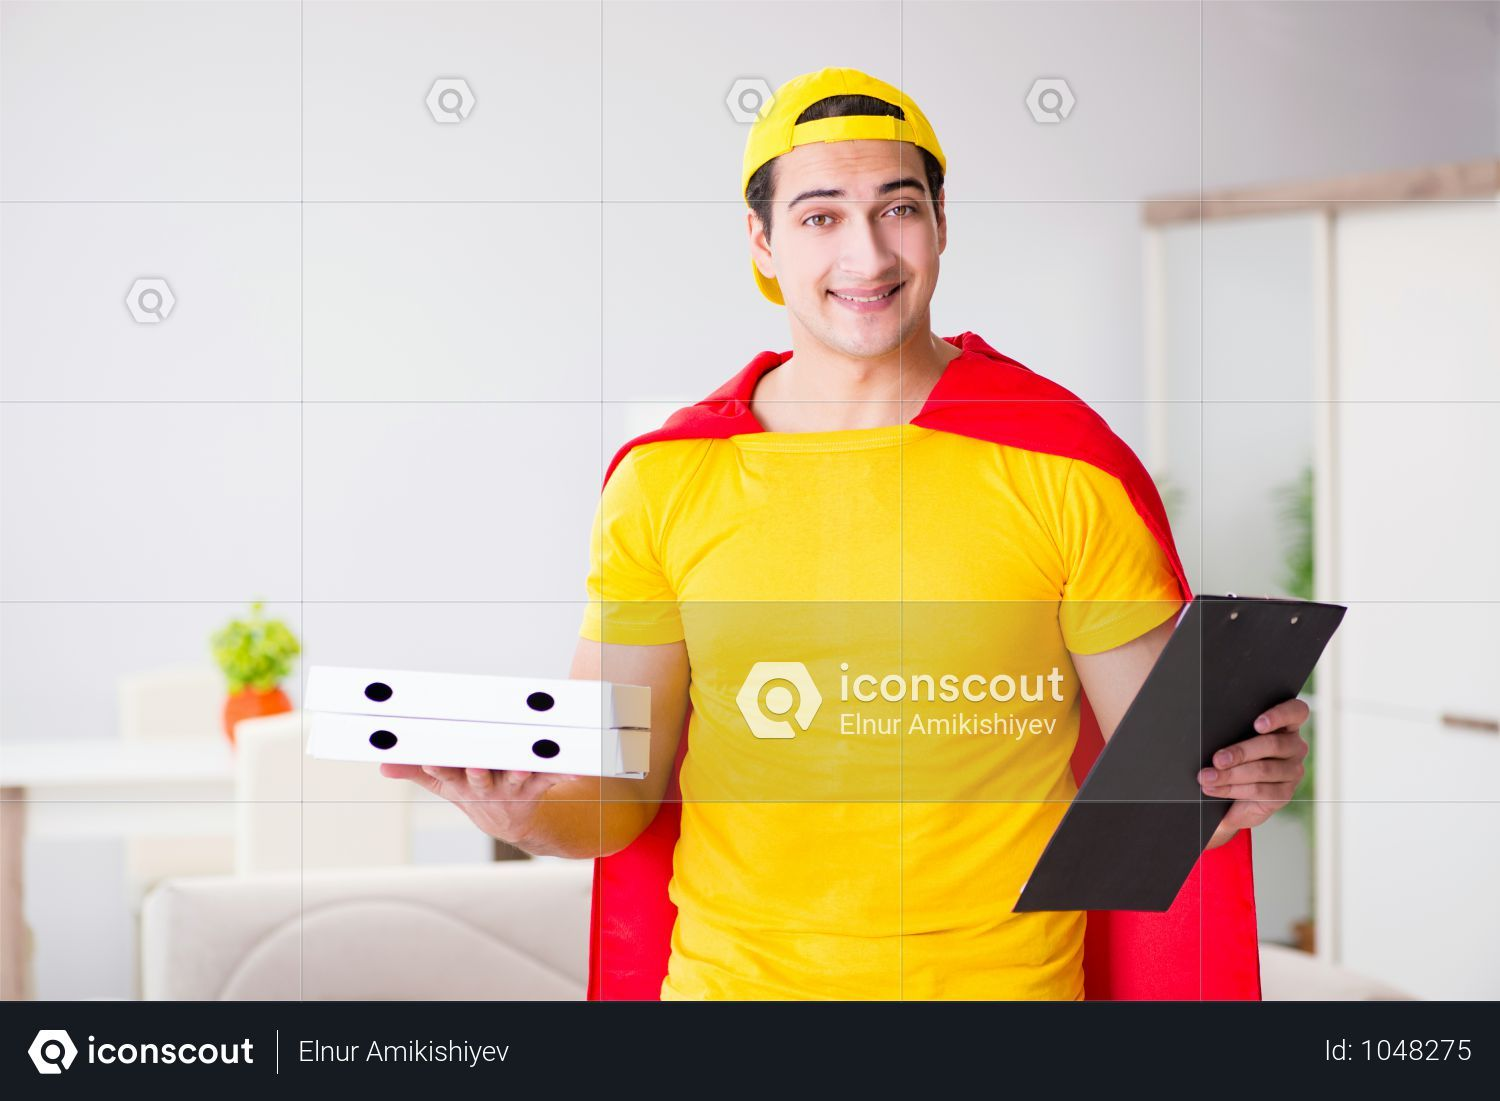 Premium Superhero Pizza Delivery Guy With Red Cover Photo Download In Png Jpg Format Pizza Delivery Guy Pizza Delivery Delivery Photos